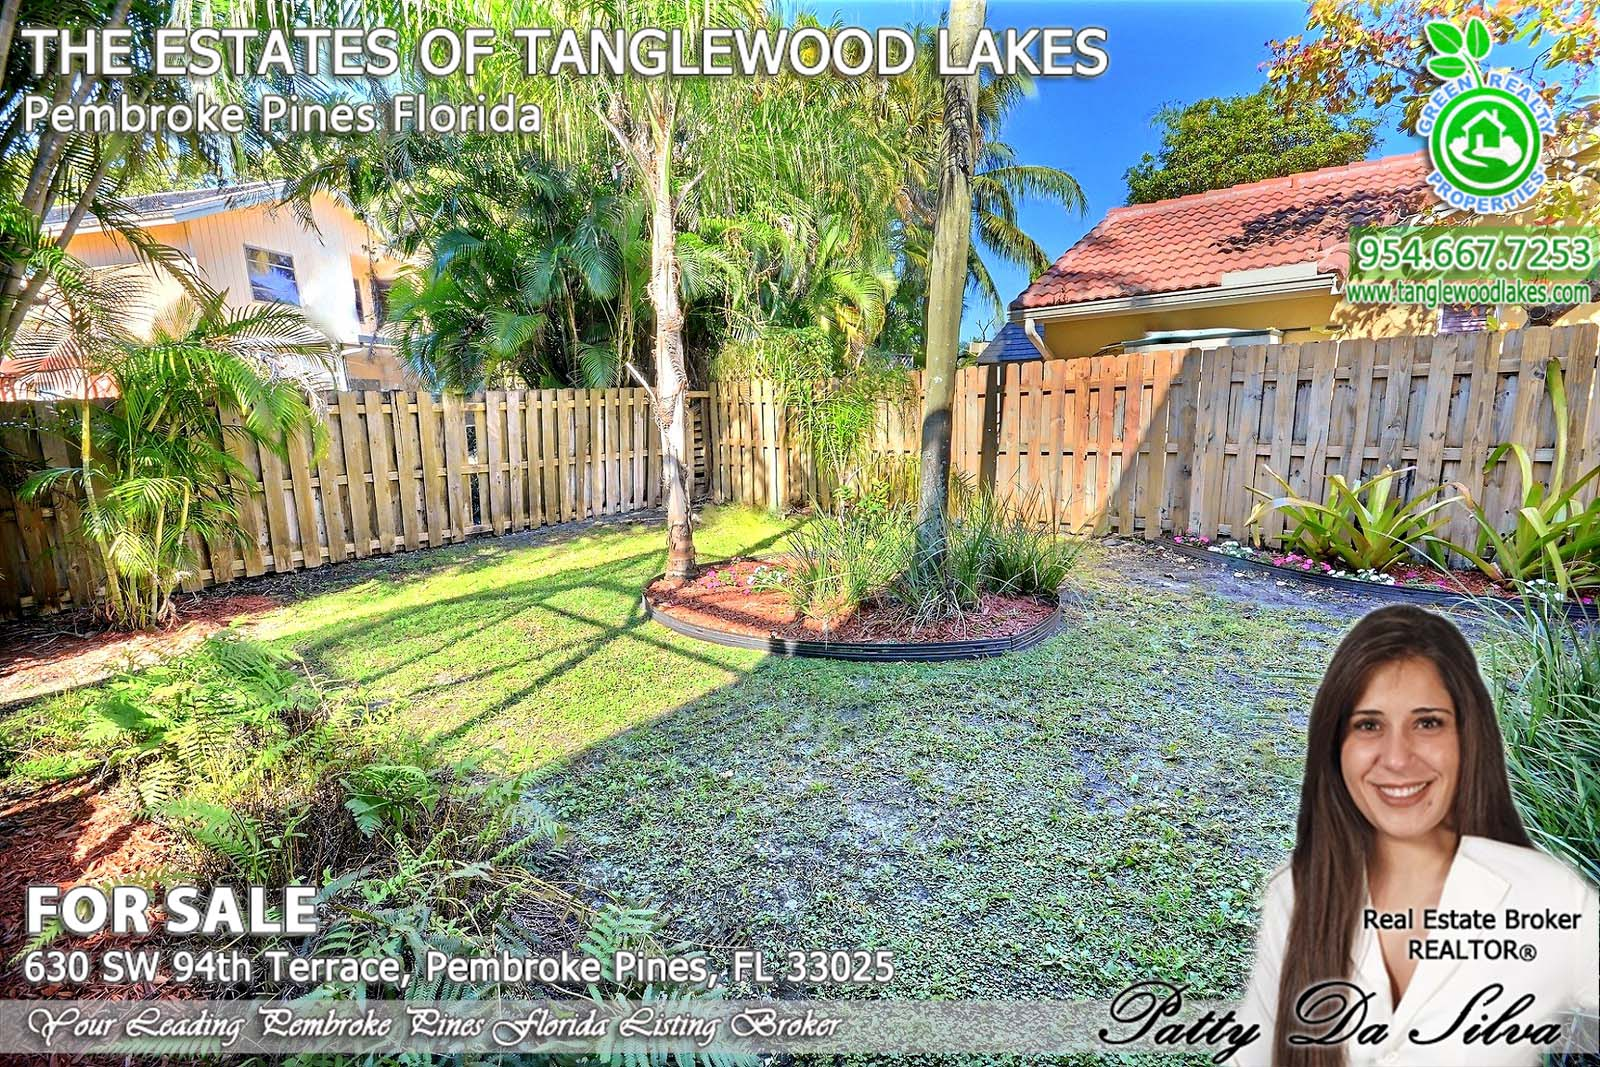 Tanglewood Lakes, Pembroke Pines Listing Agent